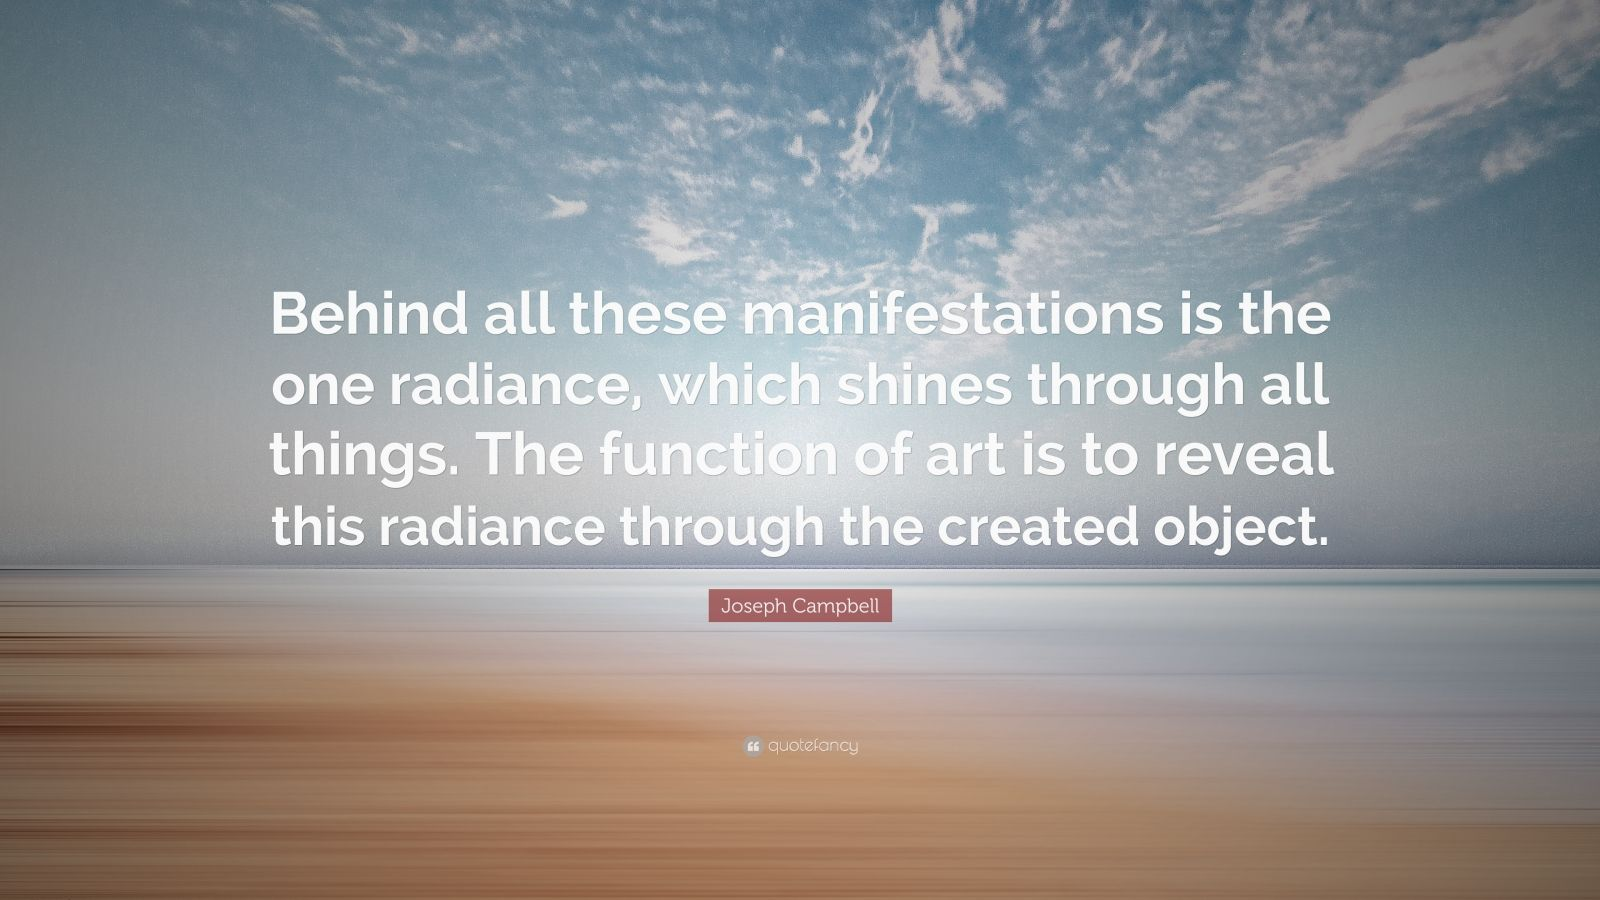 """Joseph Campbell Quote: """"Behind all these manifestations is the one radiance, which shines through all things. The function of art is to reveal this radiance through the created object."""""""